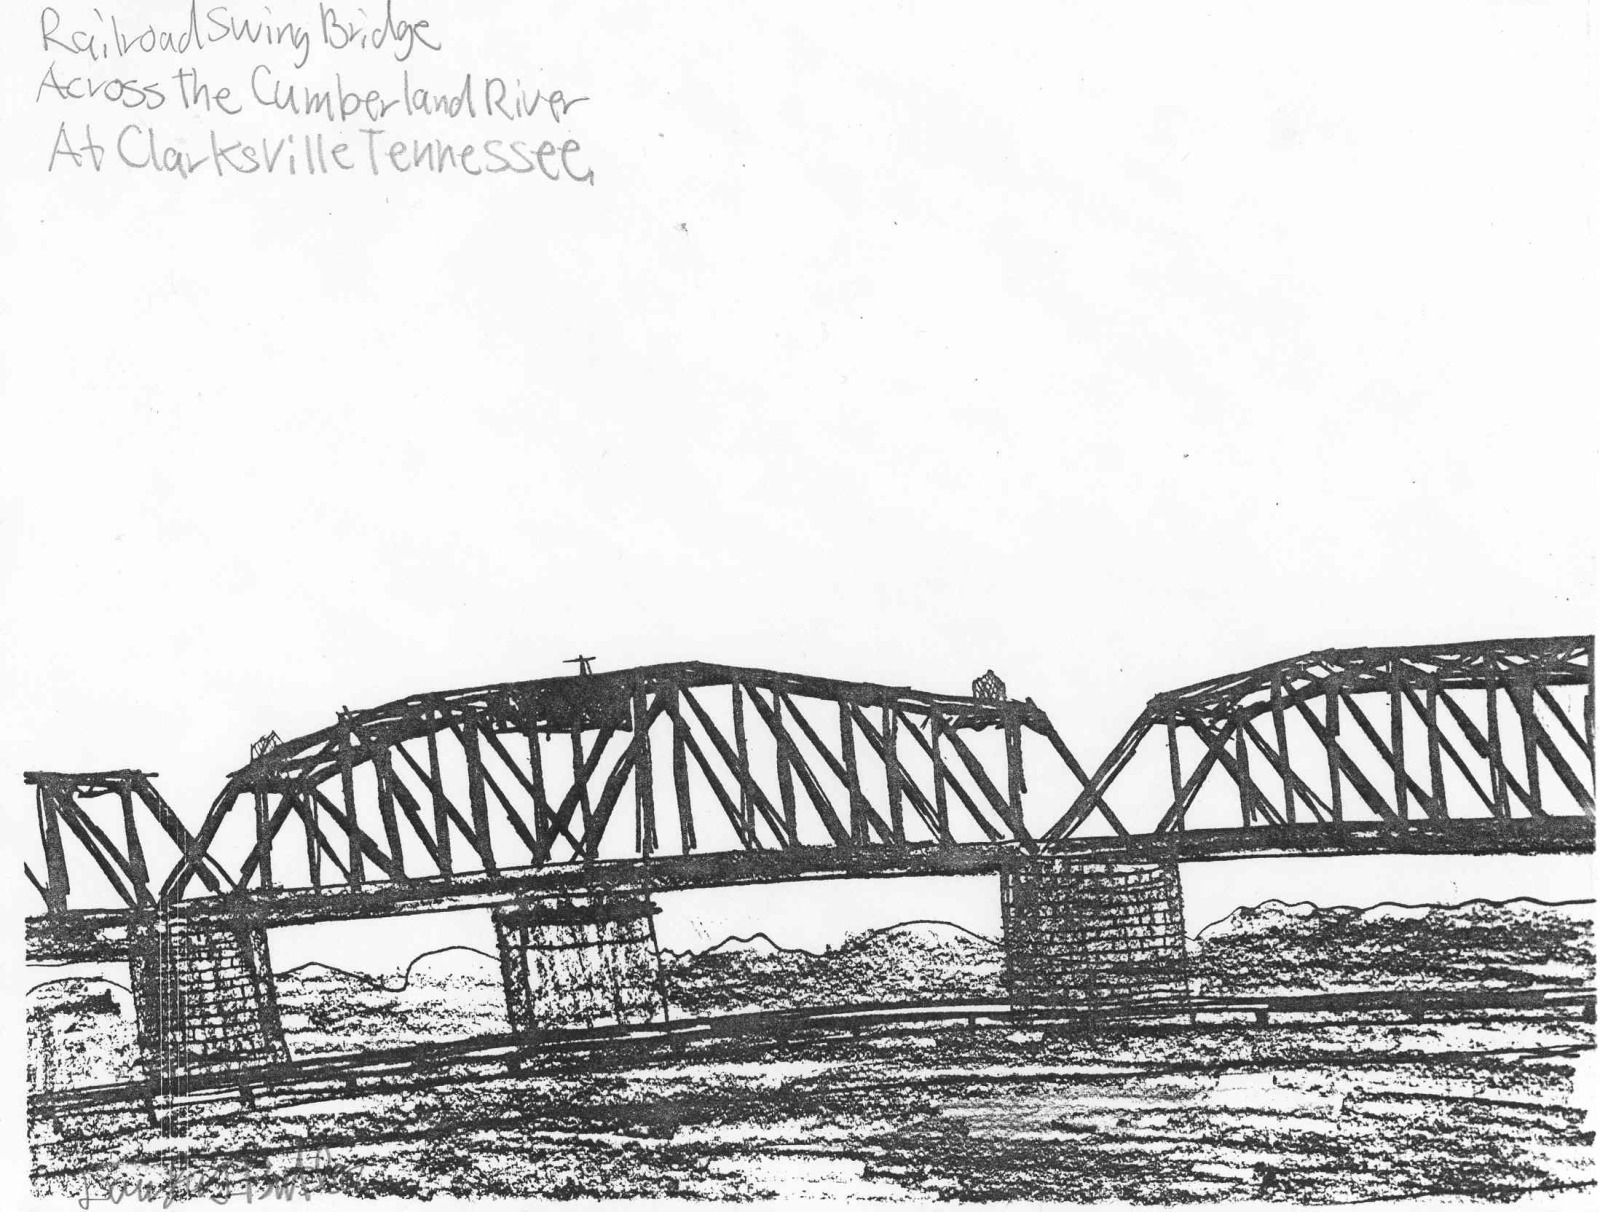 Bridgehunter rjcm cumberland river swing bridge bh photo 263937 sciox Image collections